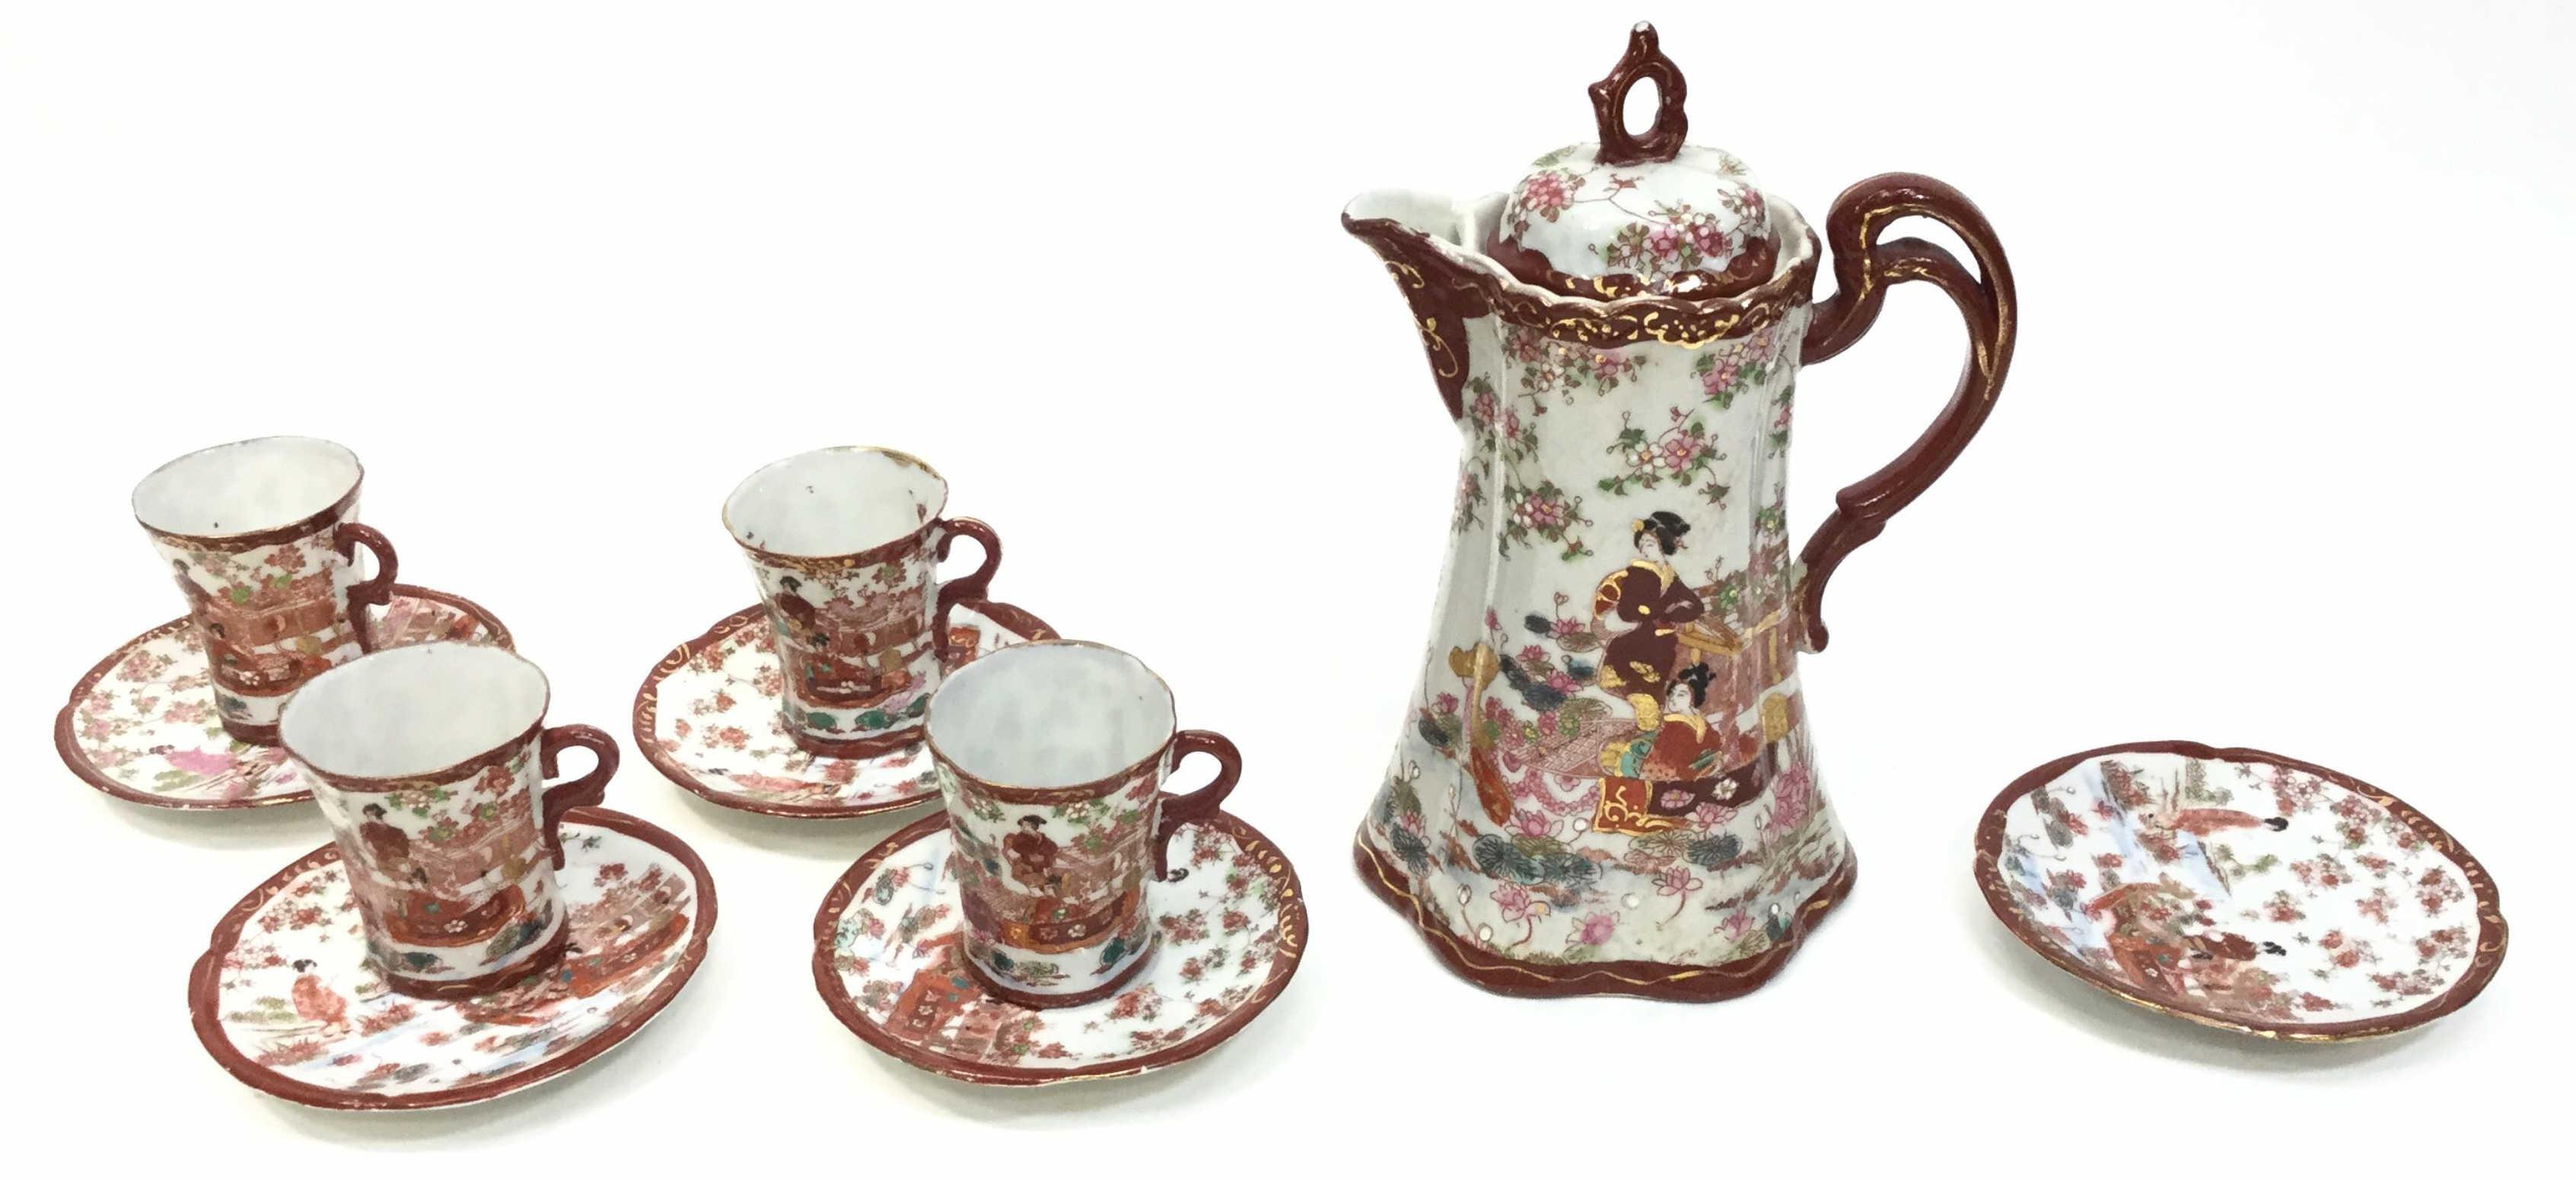 Chinese Porcelain Teacups & Pitcher